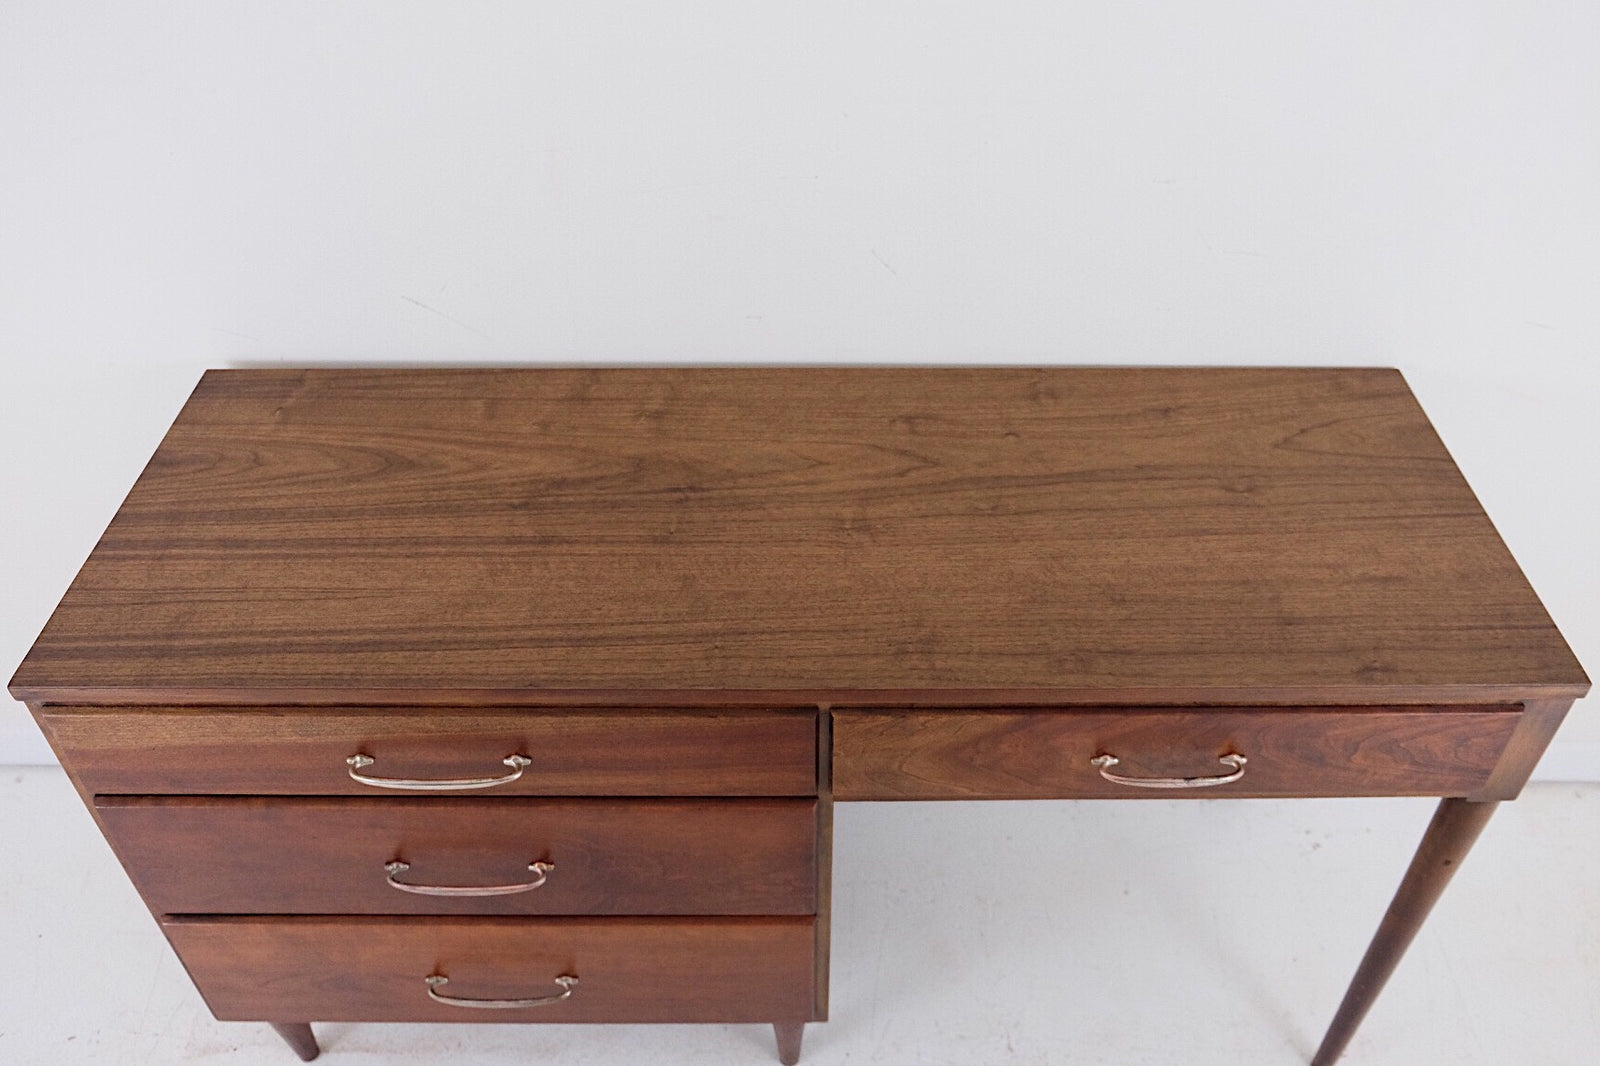 Mid Century Modern Desk New Walnut Veneer Silver Handles Beautiful Legs Red Tones